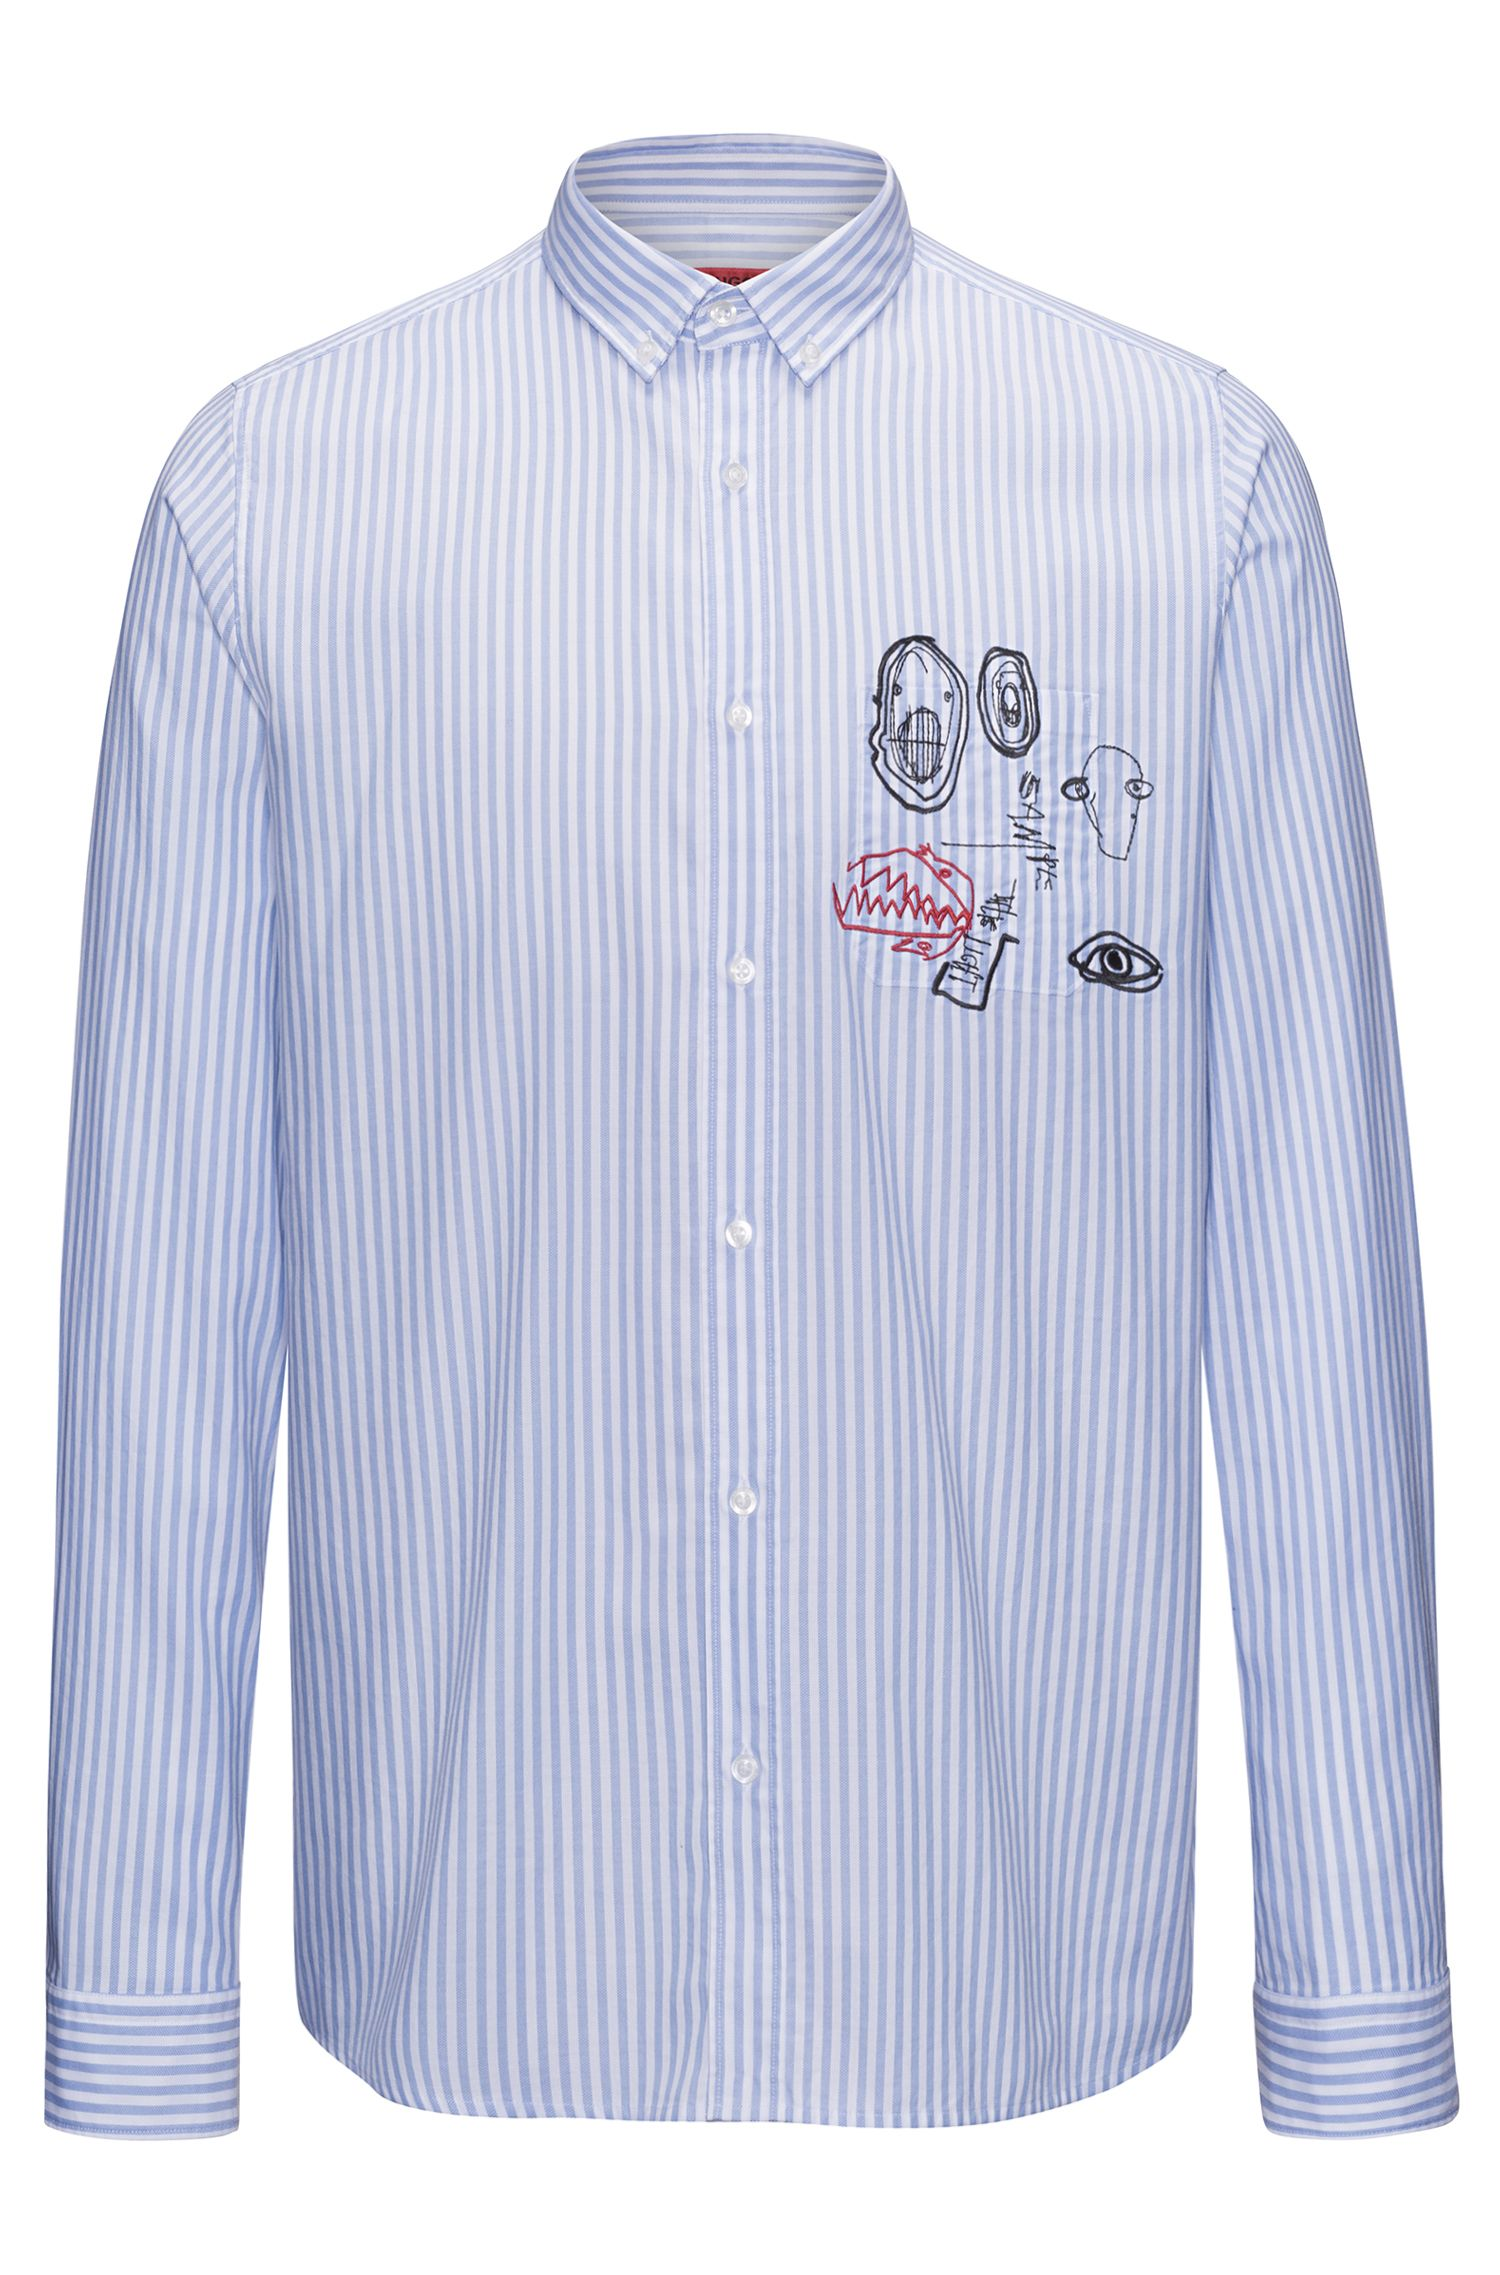 Relaxed-fit cotton shirt with embroidery detail